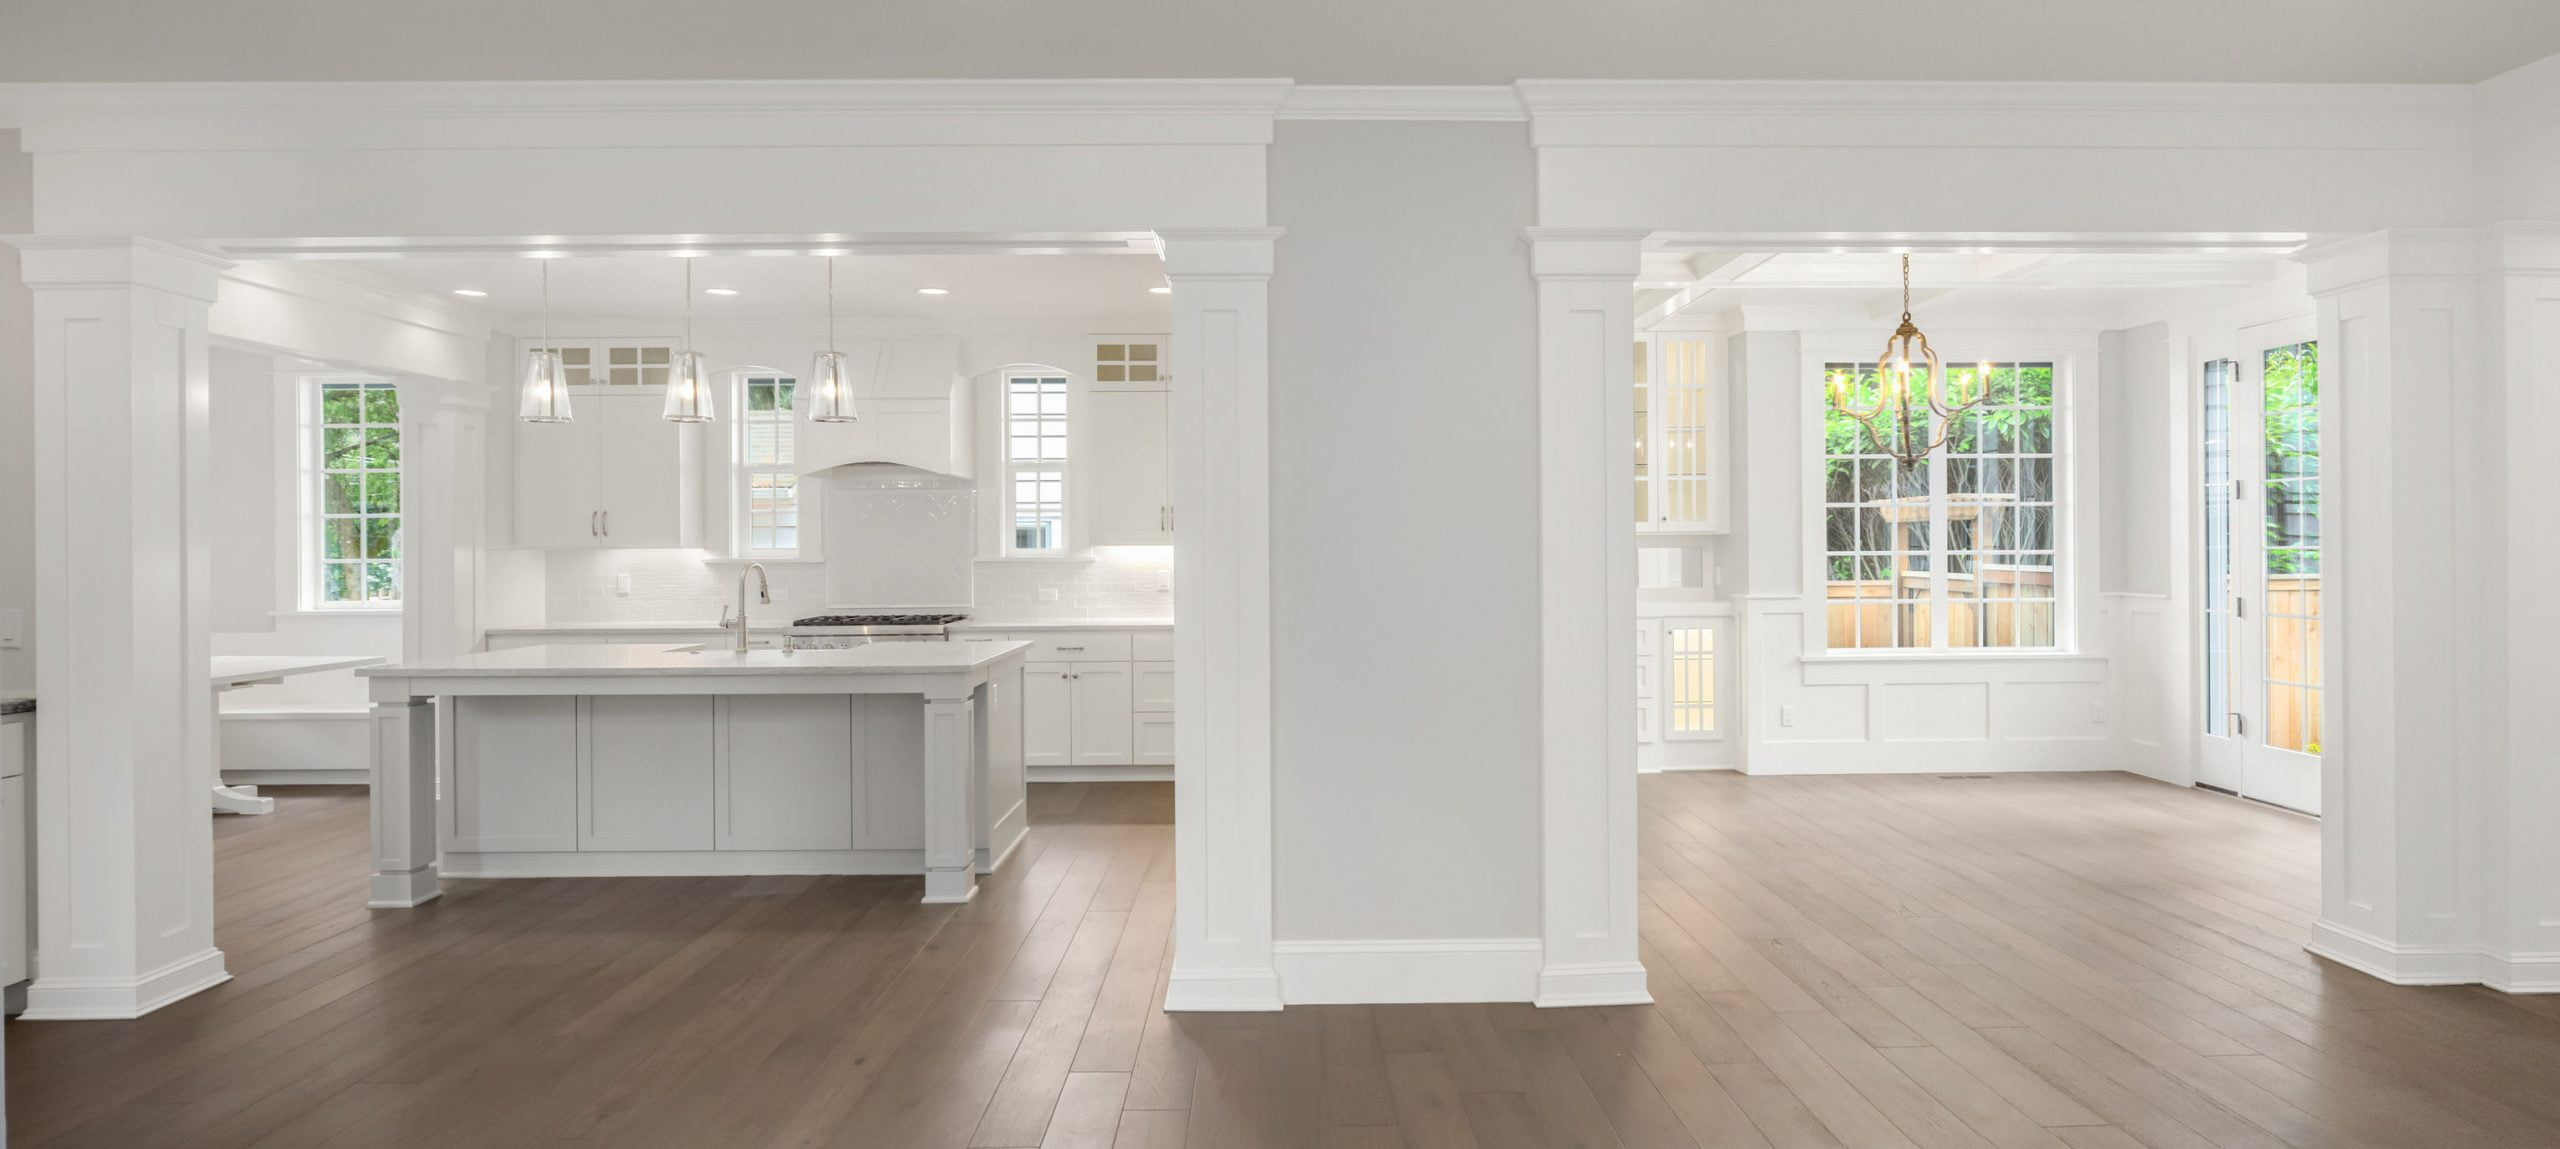 1 Kitchen Remodeling Louisville KY Homepage Header